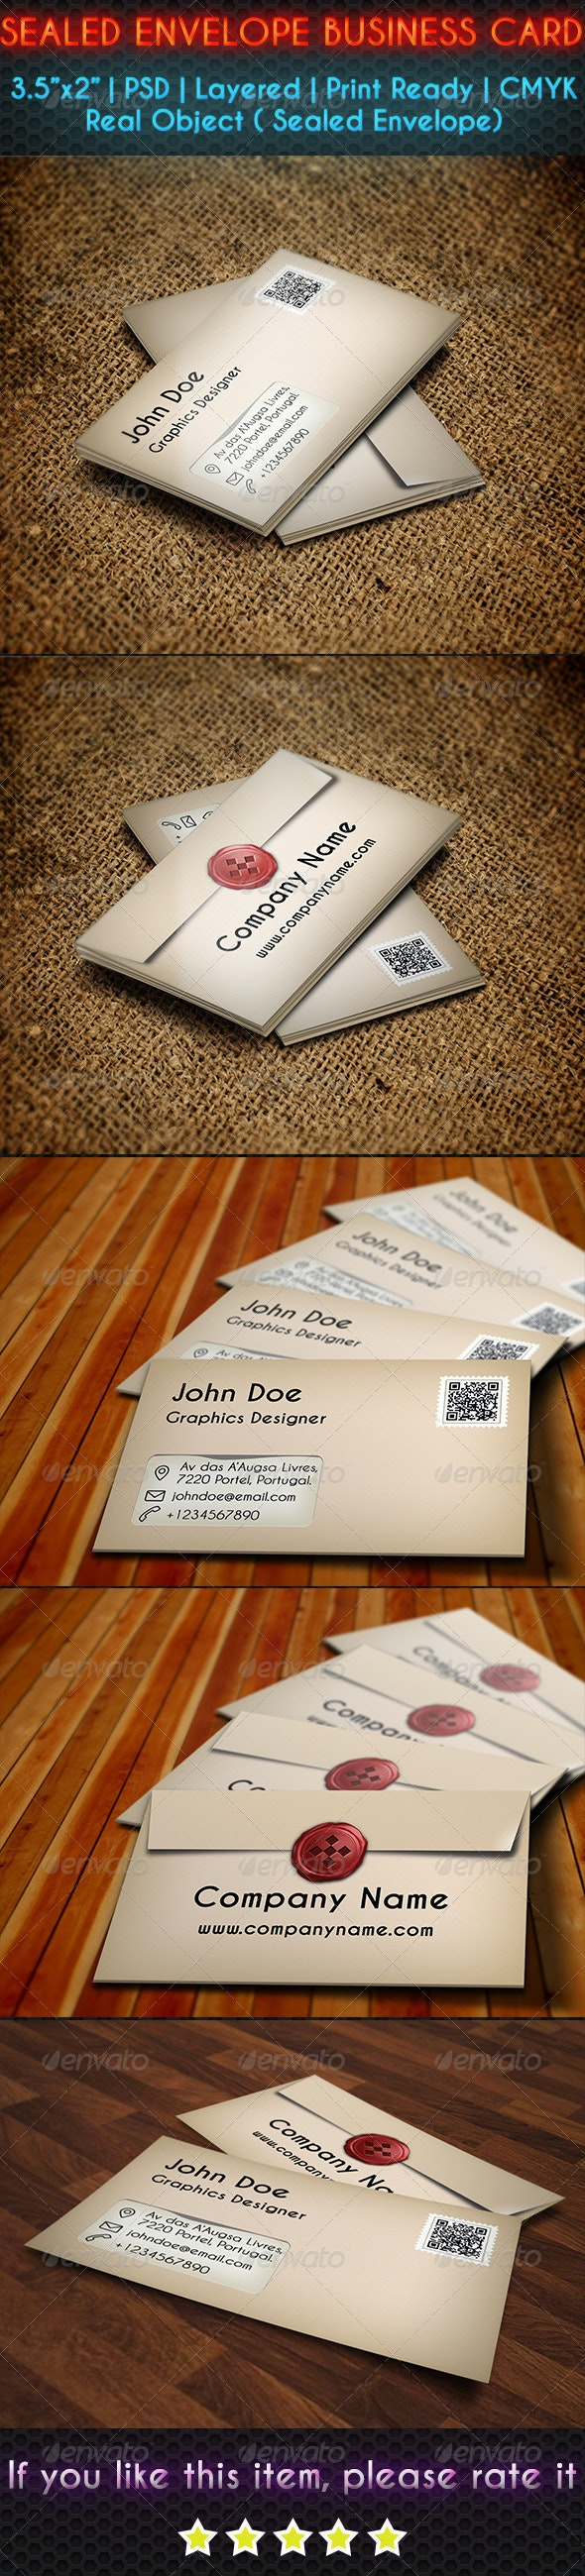 Sealed Envelope Business Card - Real Objects Business Cards